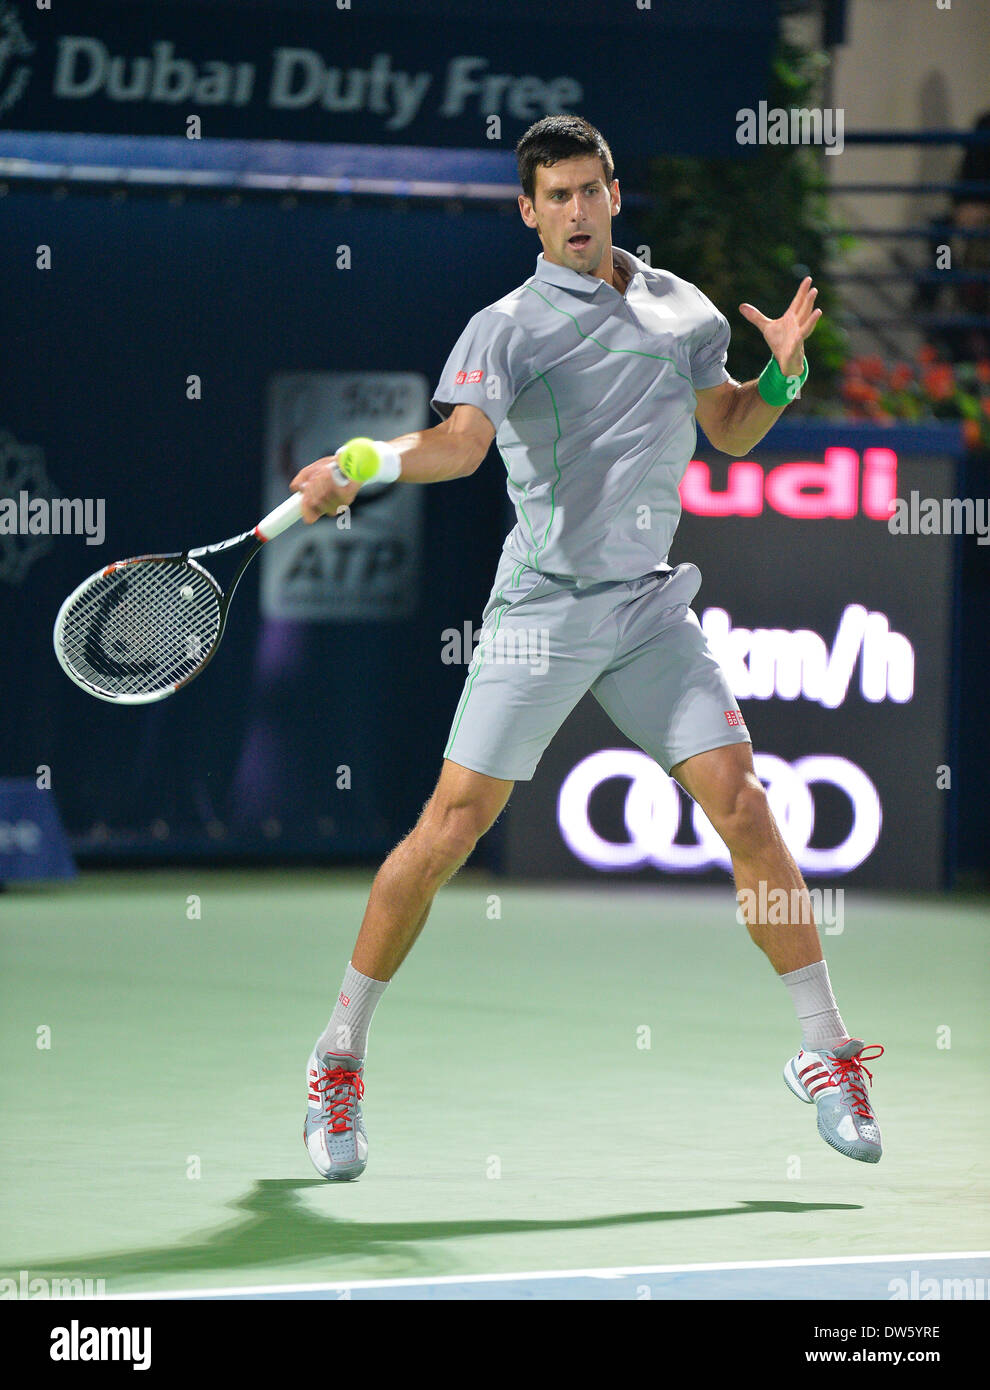 DUBAI, UAE, 27th Feb 2014. Novak Djokovic plays a forehand against Roger Federer  in the quarterfinals of the Dubai Duty Free Tennis Championships. Federer won 3-6 6-3 6-2 to advance to the finals of the tournament Credit:  Feroz Khan/Alamy Live News - Stock Image